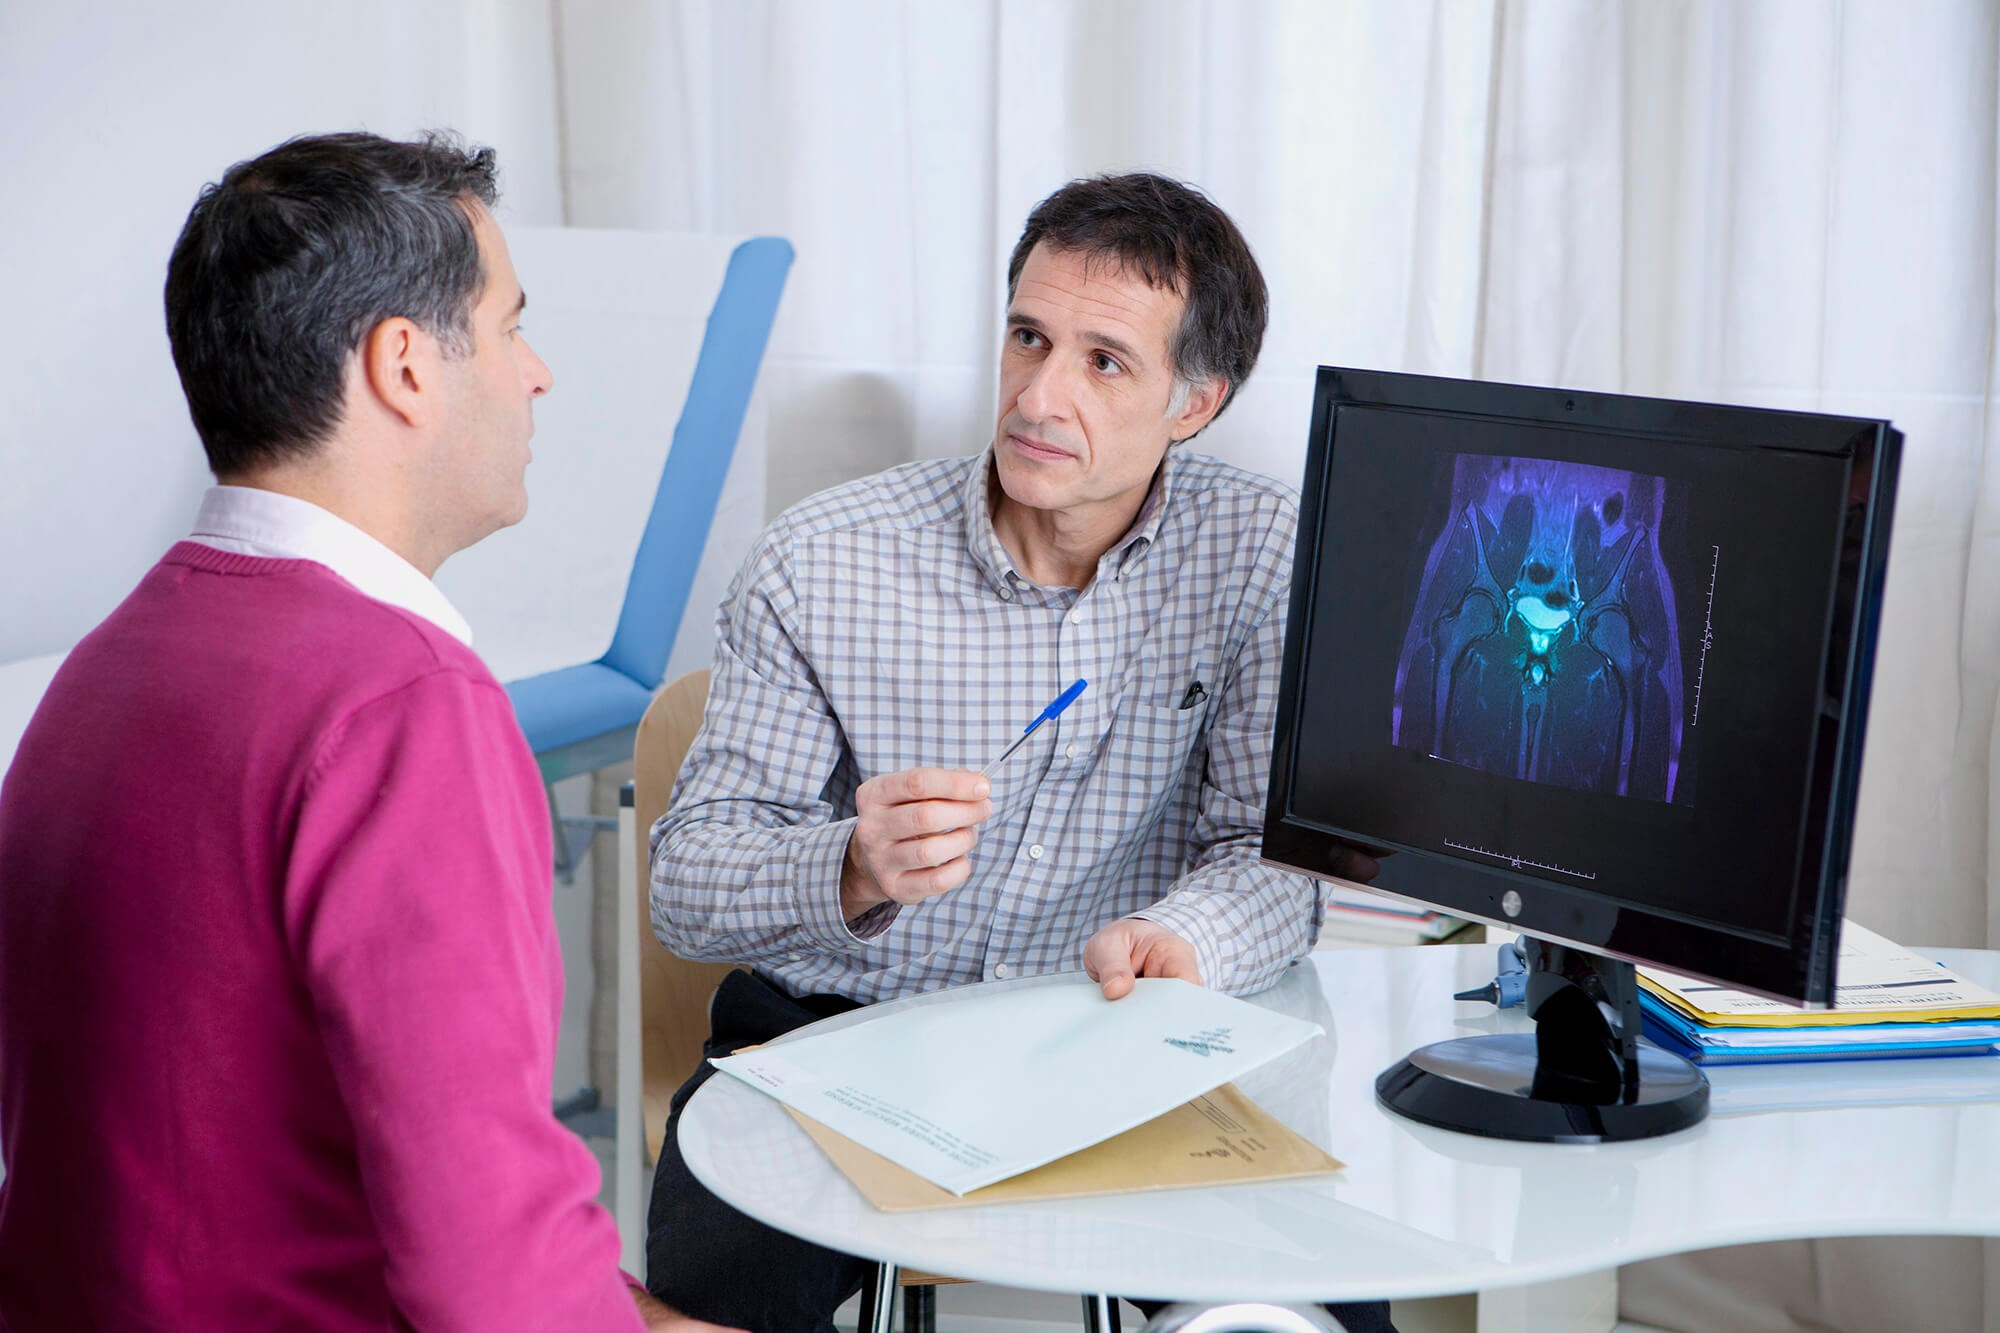 Older men with metastatic castration-resistant prostate cancer are often perceived as likely to play a passive role regarding care-related decisions.